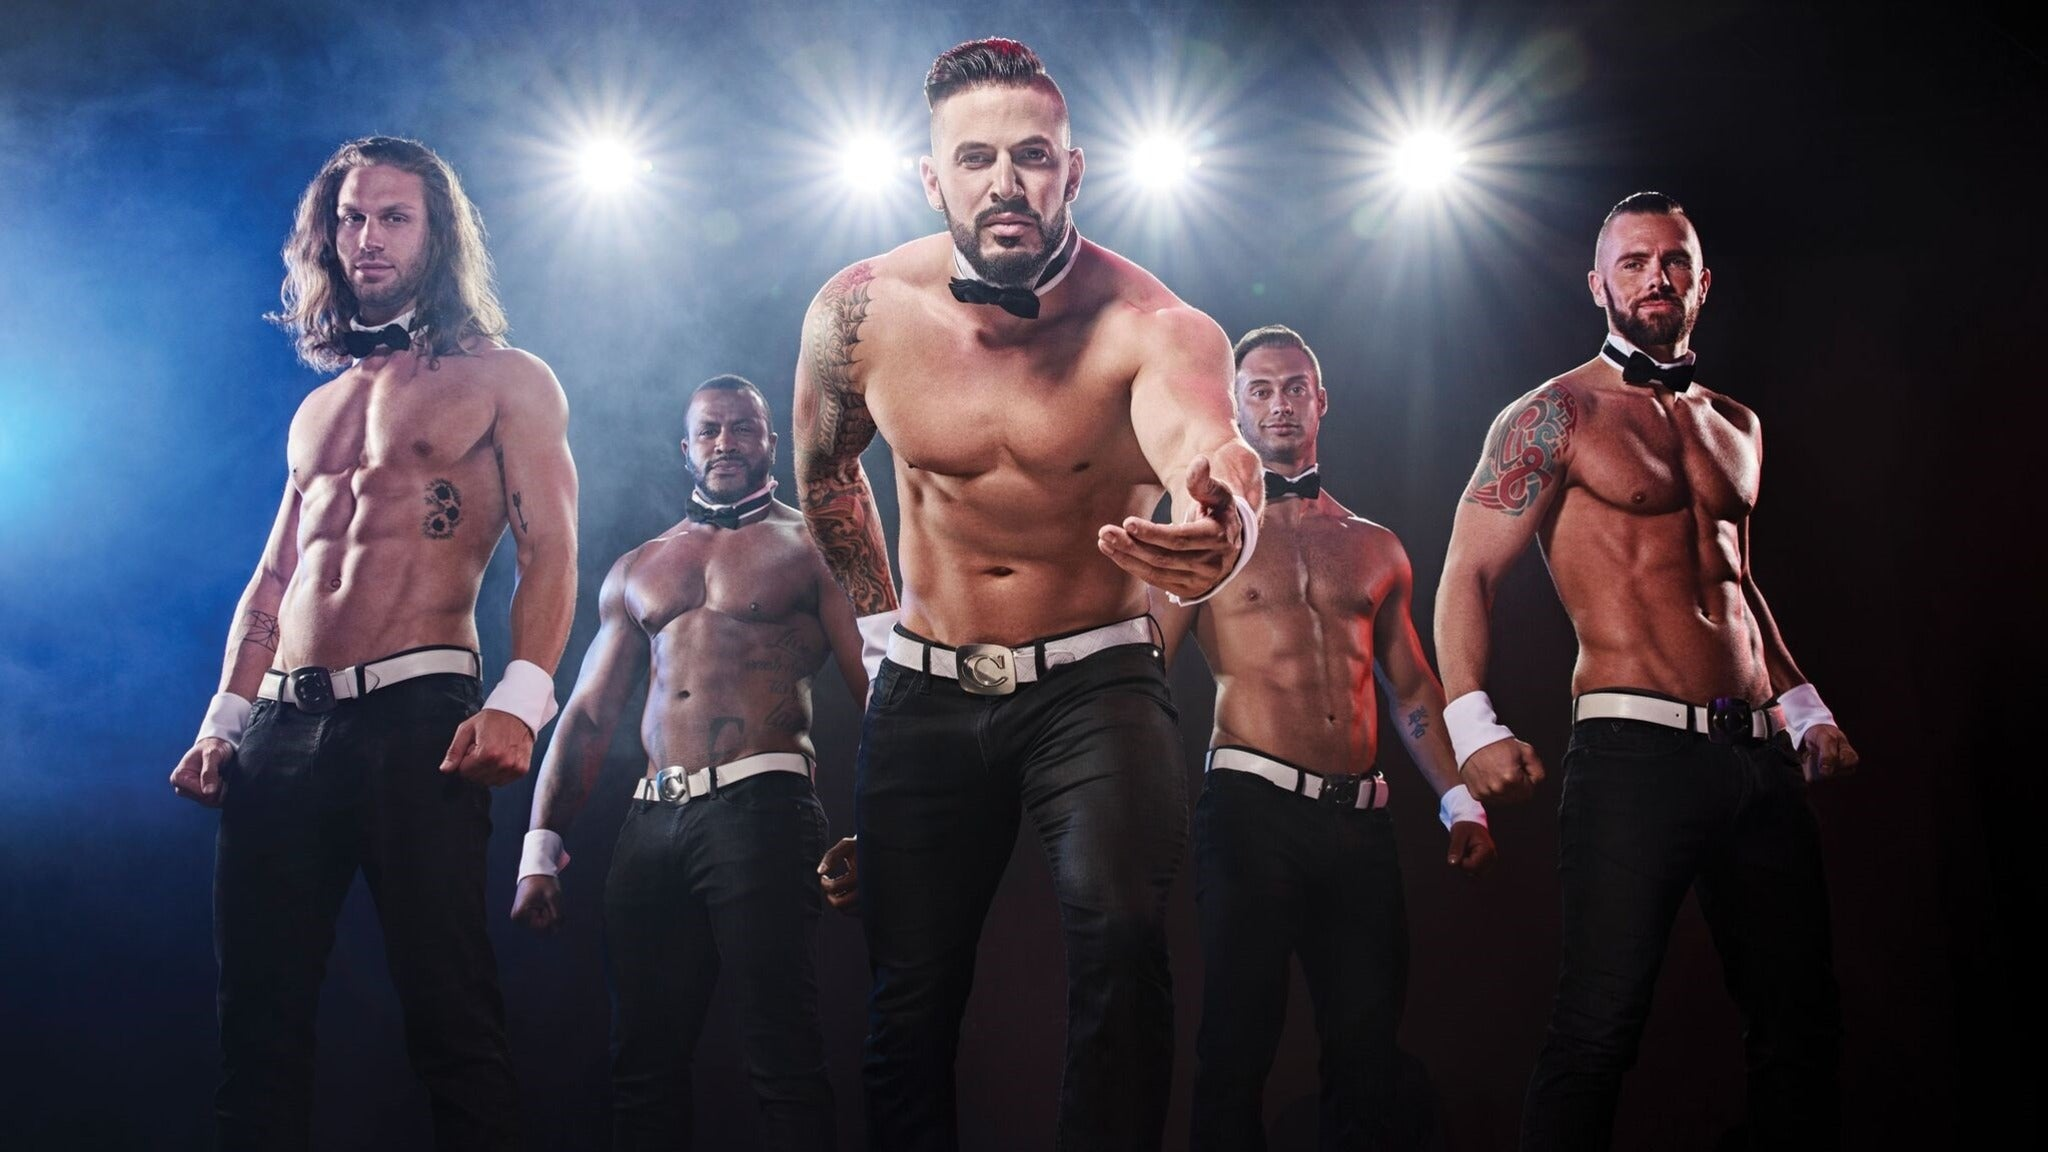 Chippendales at Sycuan Casino - El Cajon, CA 92019